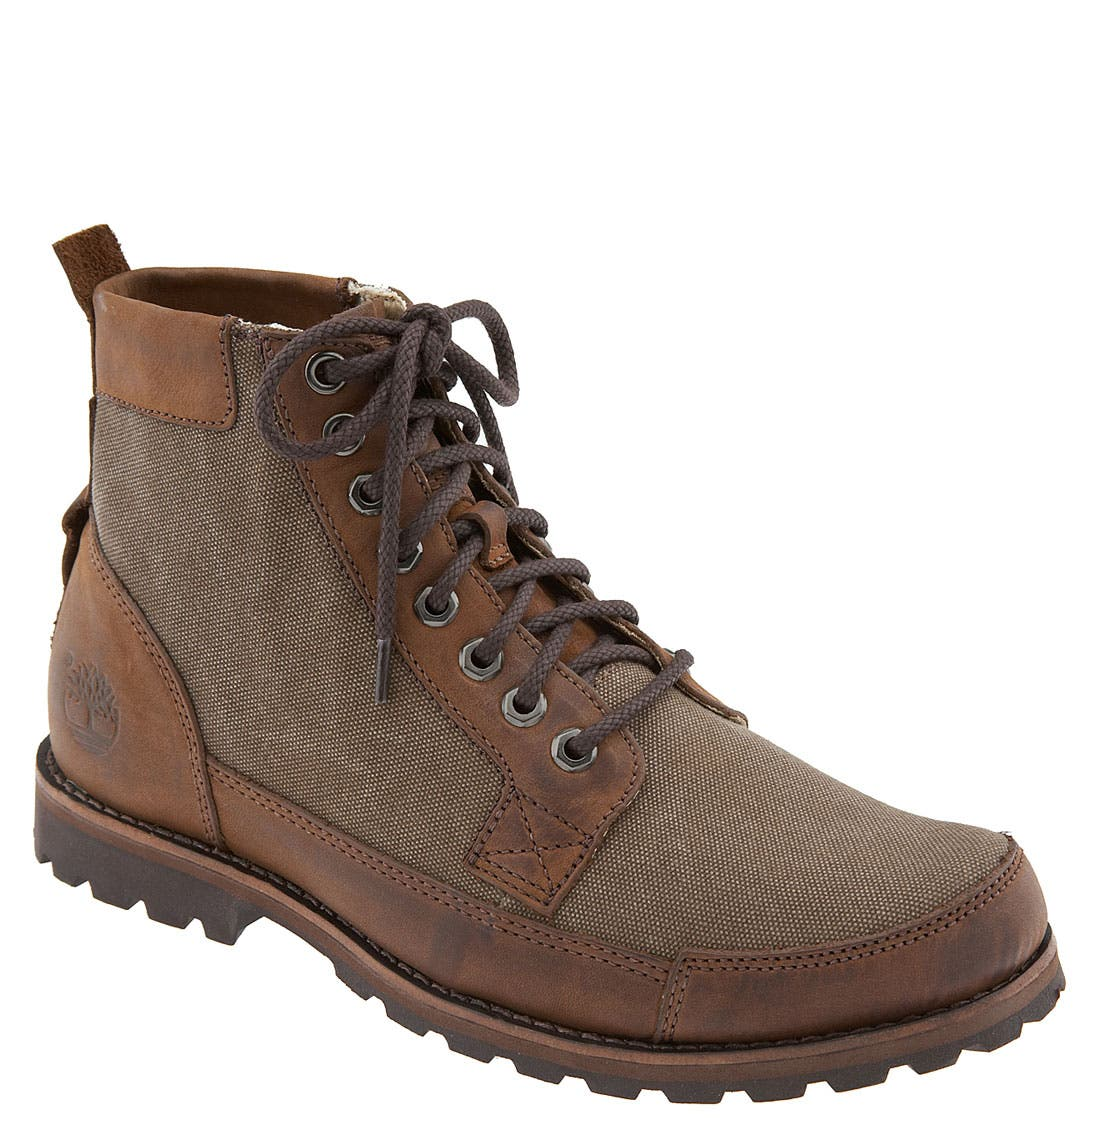 Earthkeepers<sup>®</sup> Lace-Up Boot,                             Main thumbnail 1, color,                             214